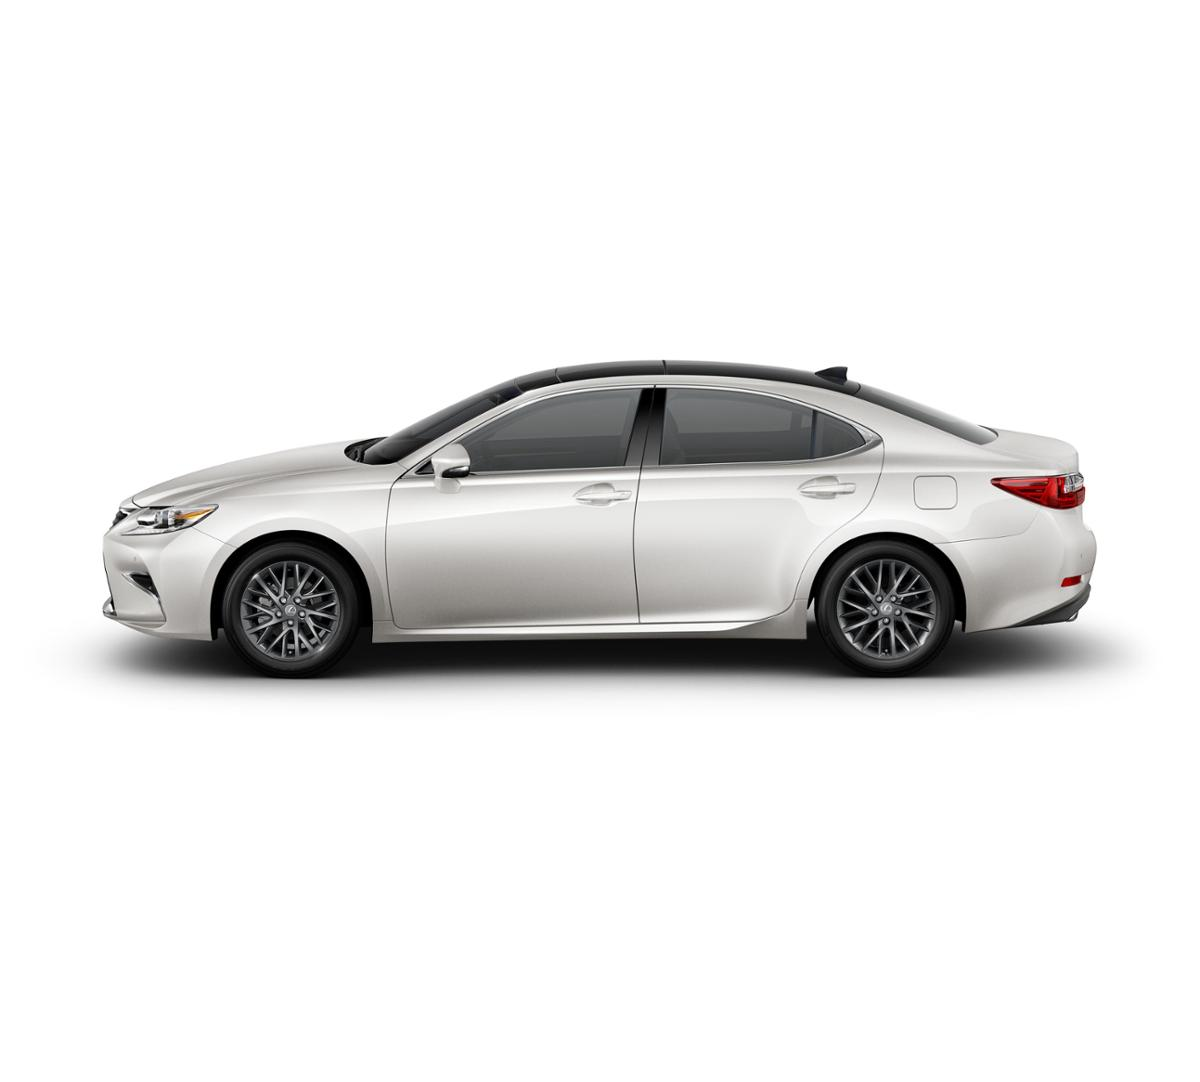 2018 Lexus ES 350 Vehicle Photo in Modesto, CA 95356